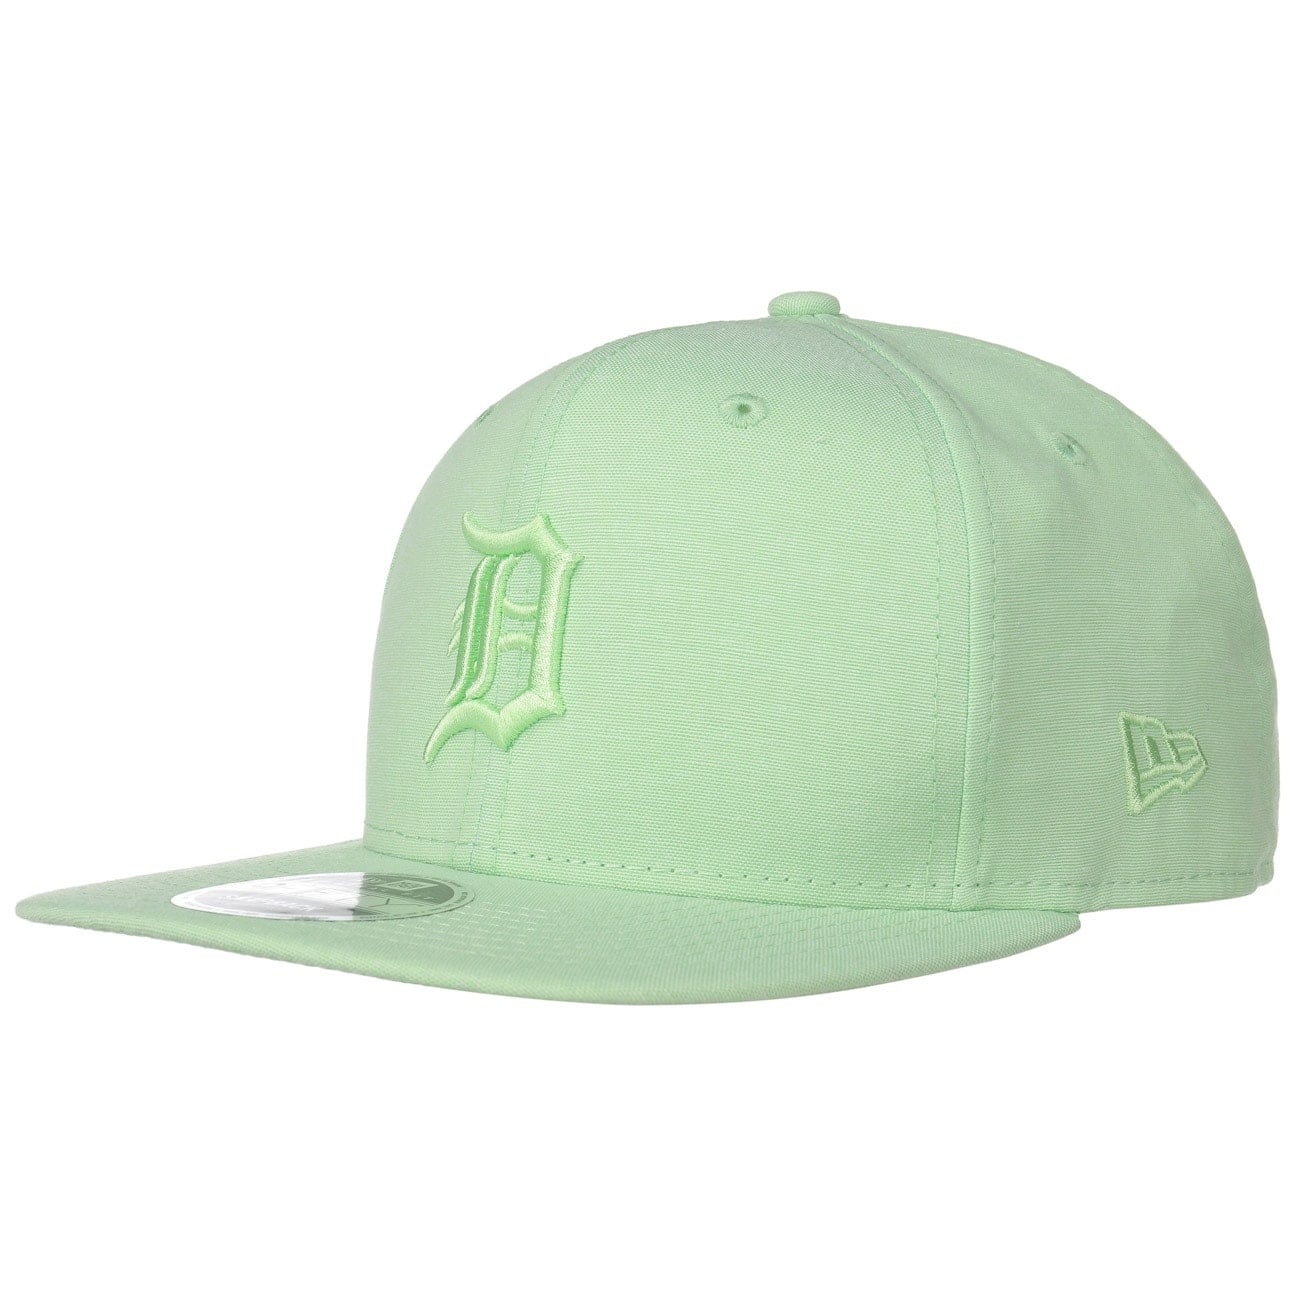 Casquette 9Fifty Oxford Tigers by New Era  baseball cap